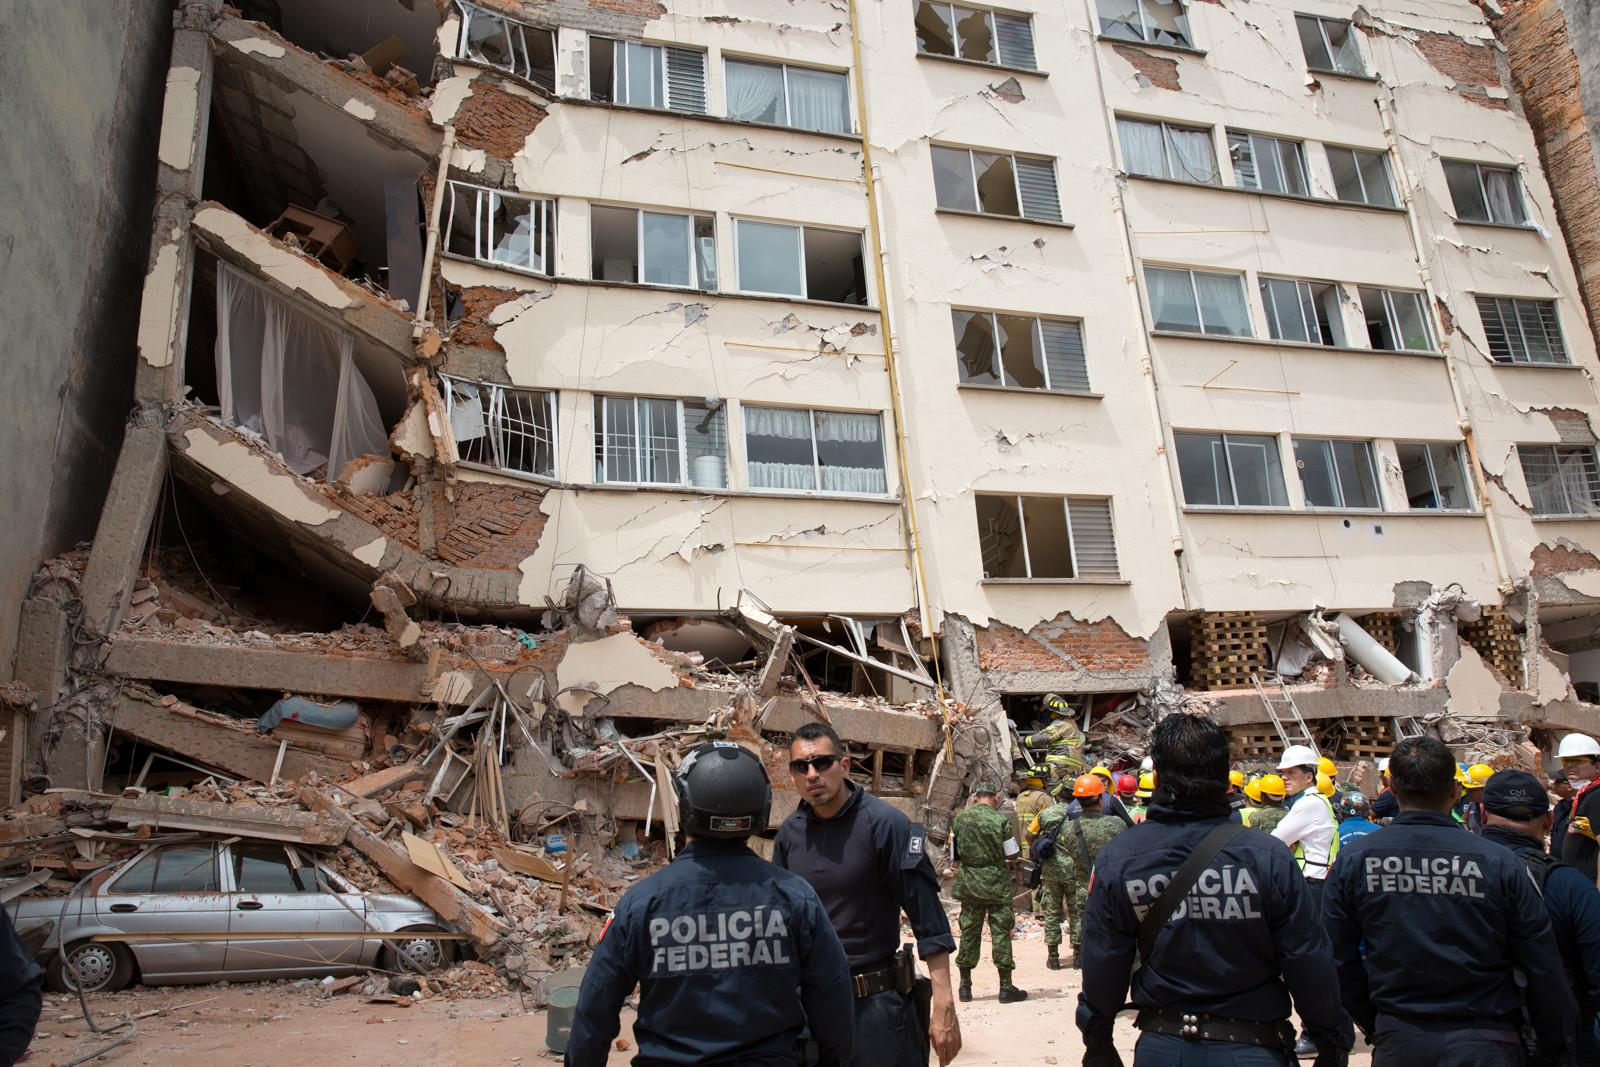 MEXICO Ongoing rescue operation for survivors feared trapped in a collapsed building felled by a devastating earthquake, in the Lindavista neighborhood of Mexico City on September 20, 2017. A 7.1 magnitude earthquake rocked Central Mexico the day before, killing more than 300 people and causing serious damage to buildings in the capital.